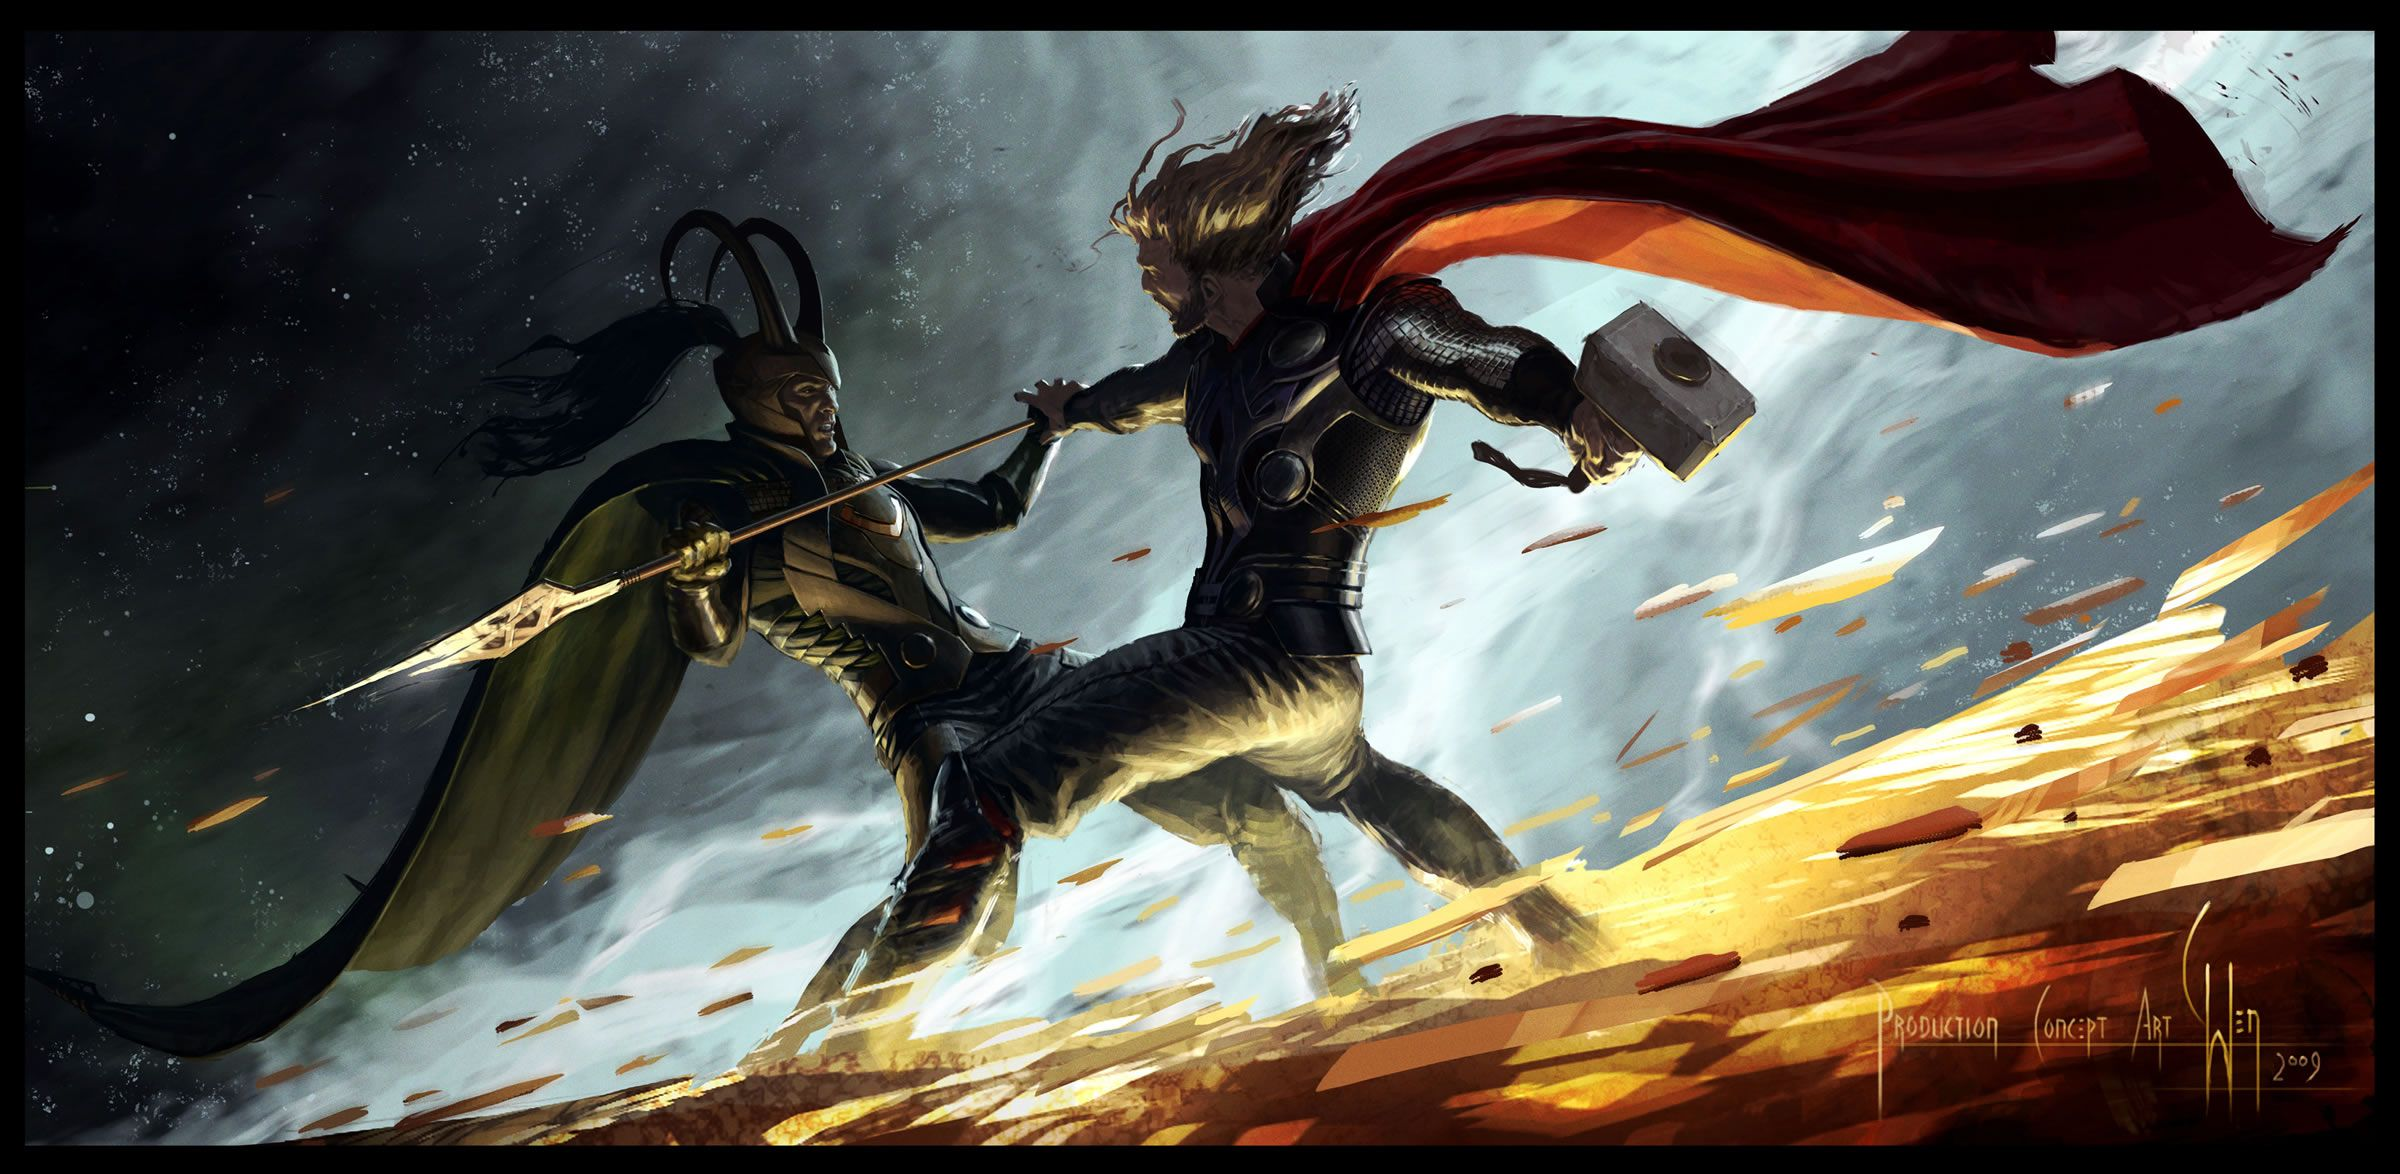 Popular Wallpaper Marvel Odin - 125cf3c3211a59f1d87d7fc24e8c76a3  Collection_784129.jpg